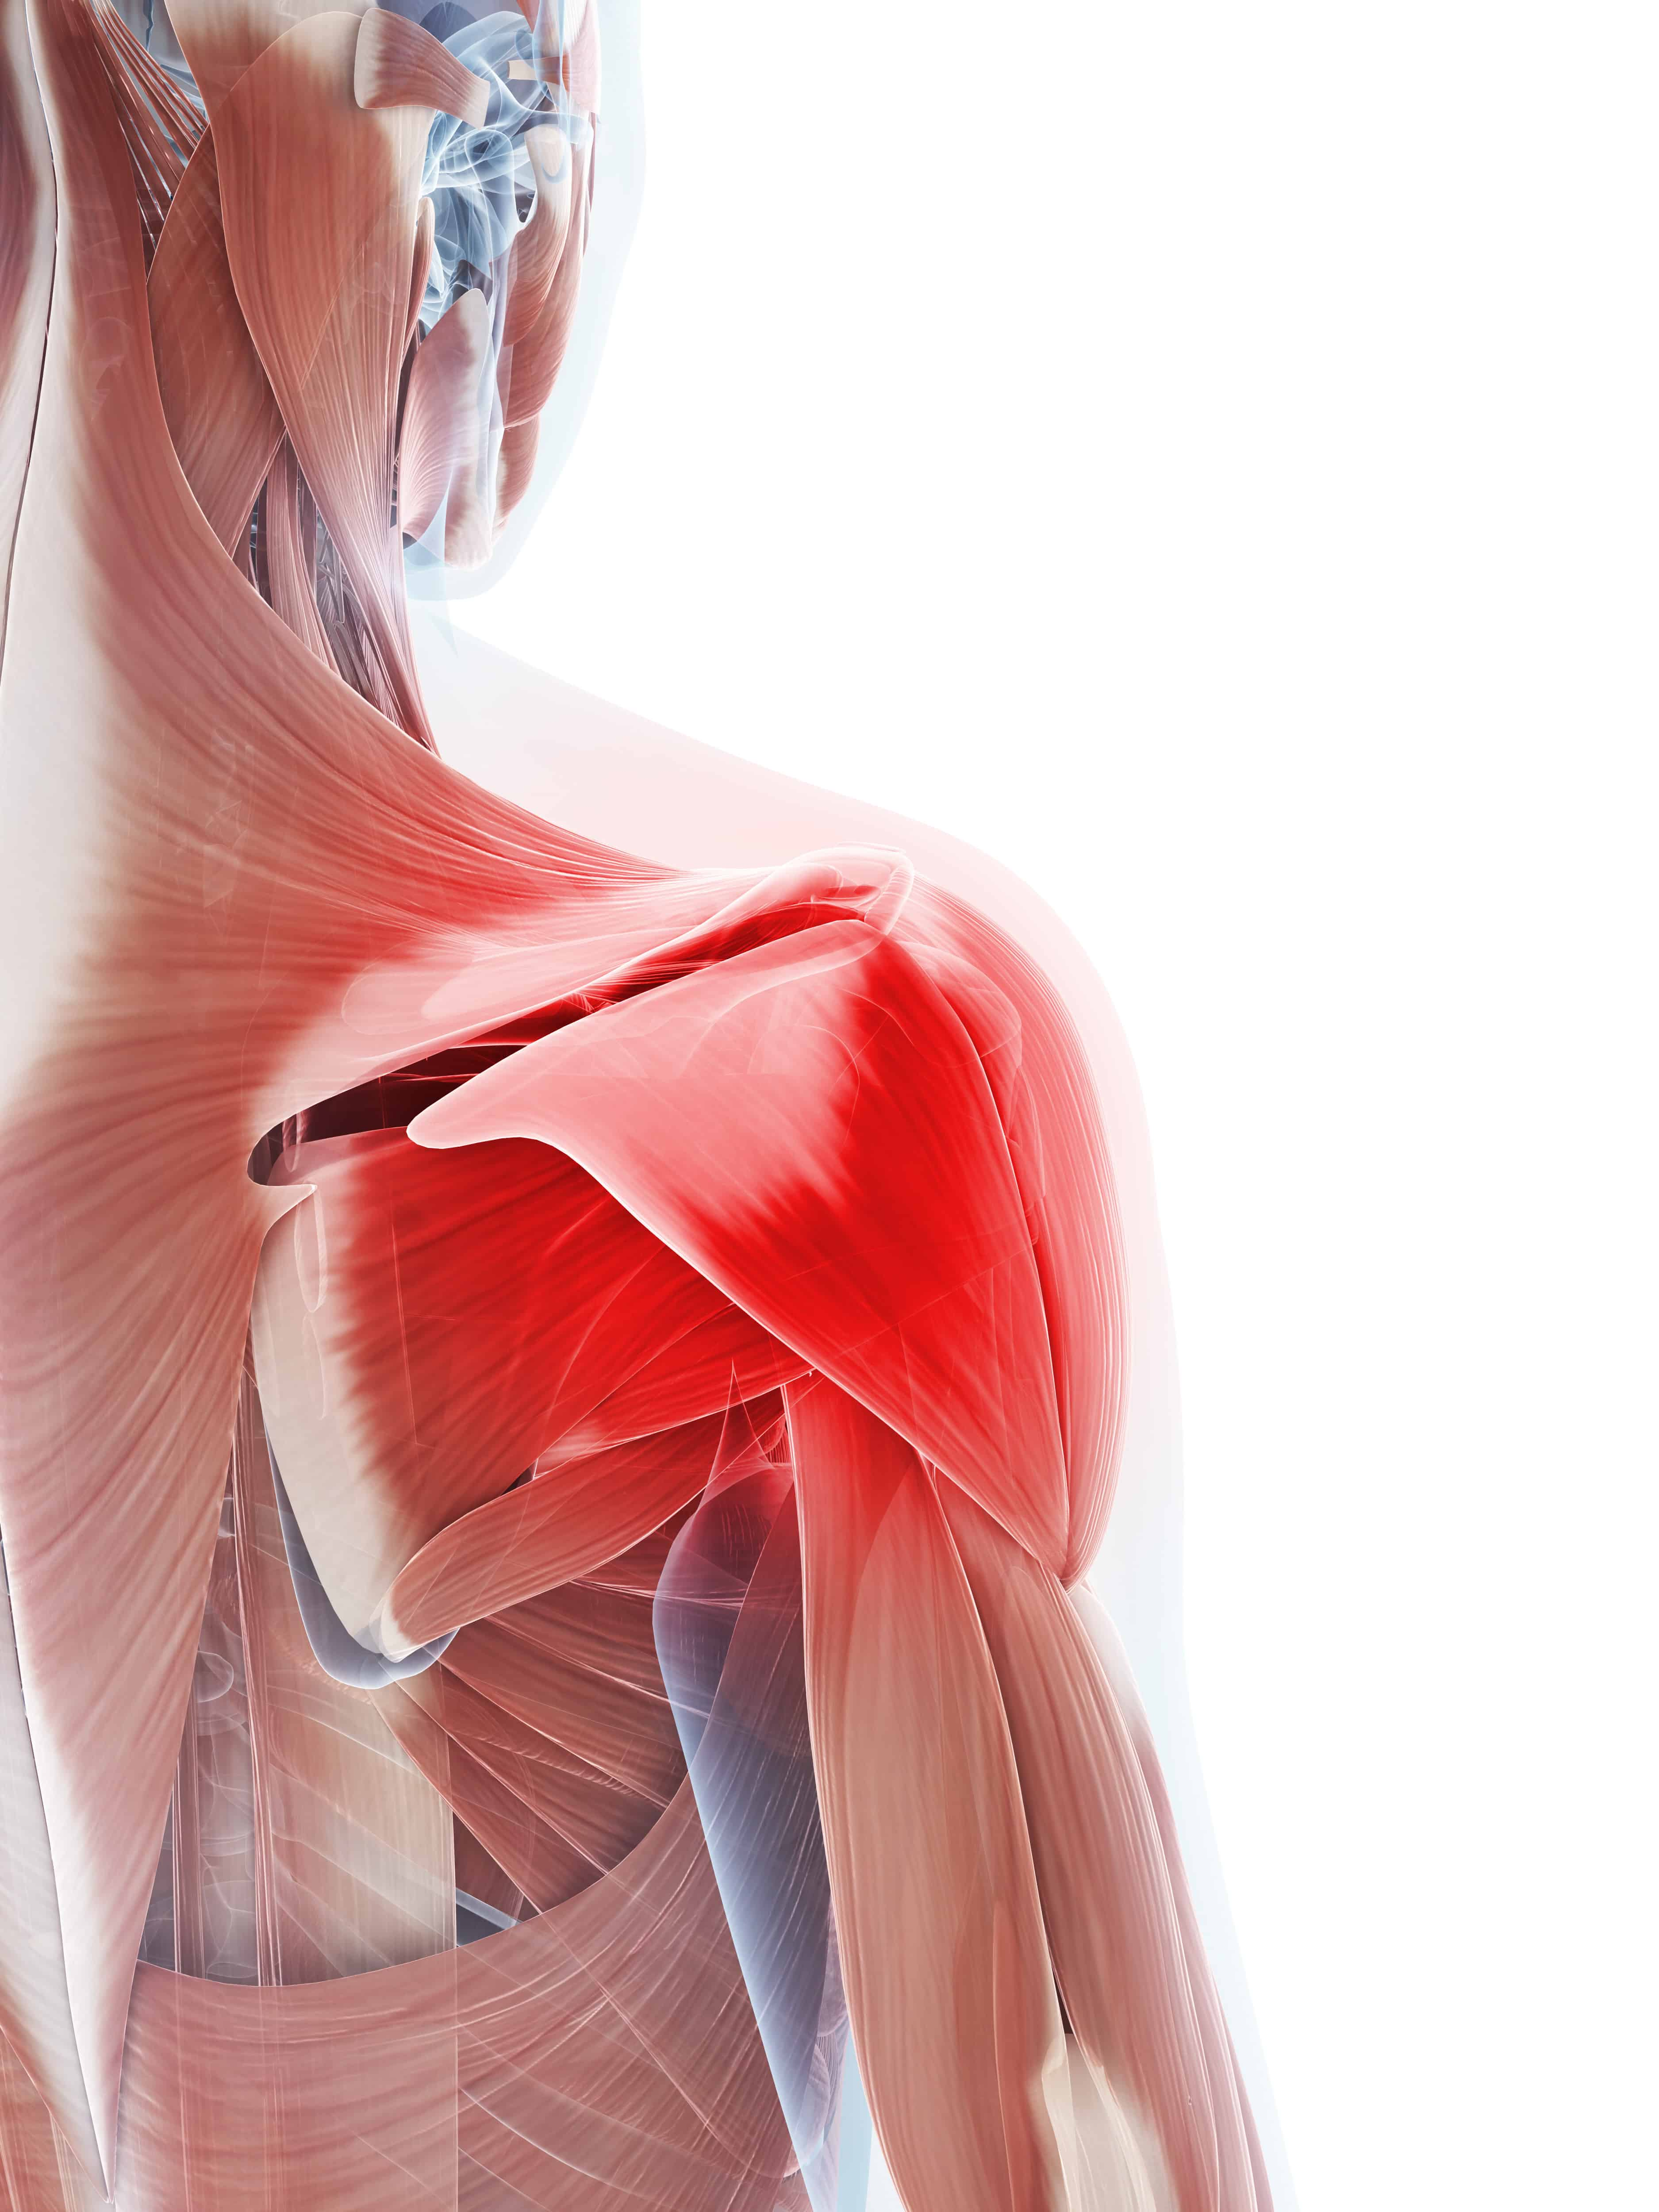 Shoulder Series: structure and function - Set Physical Therapy